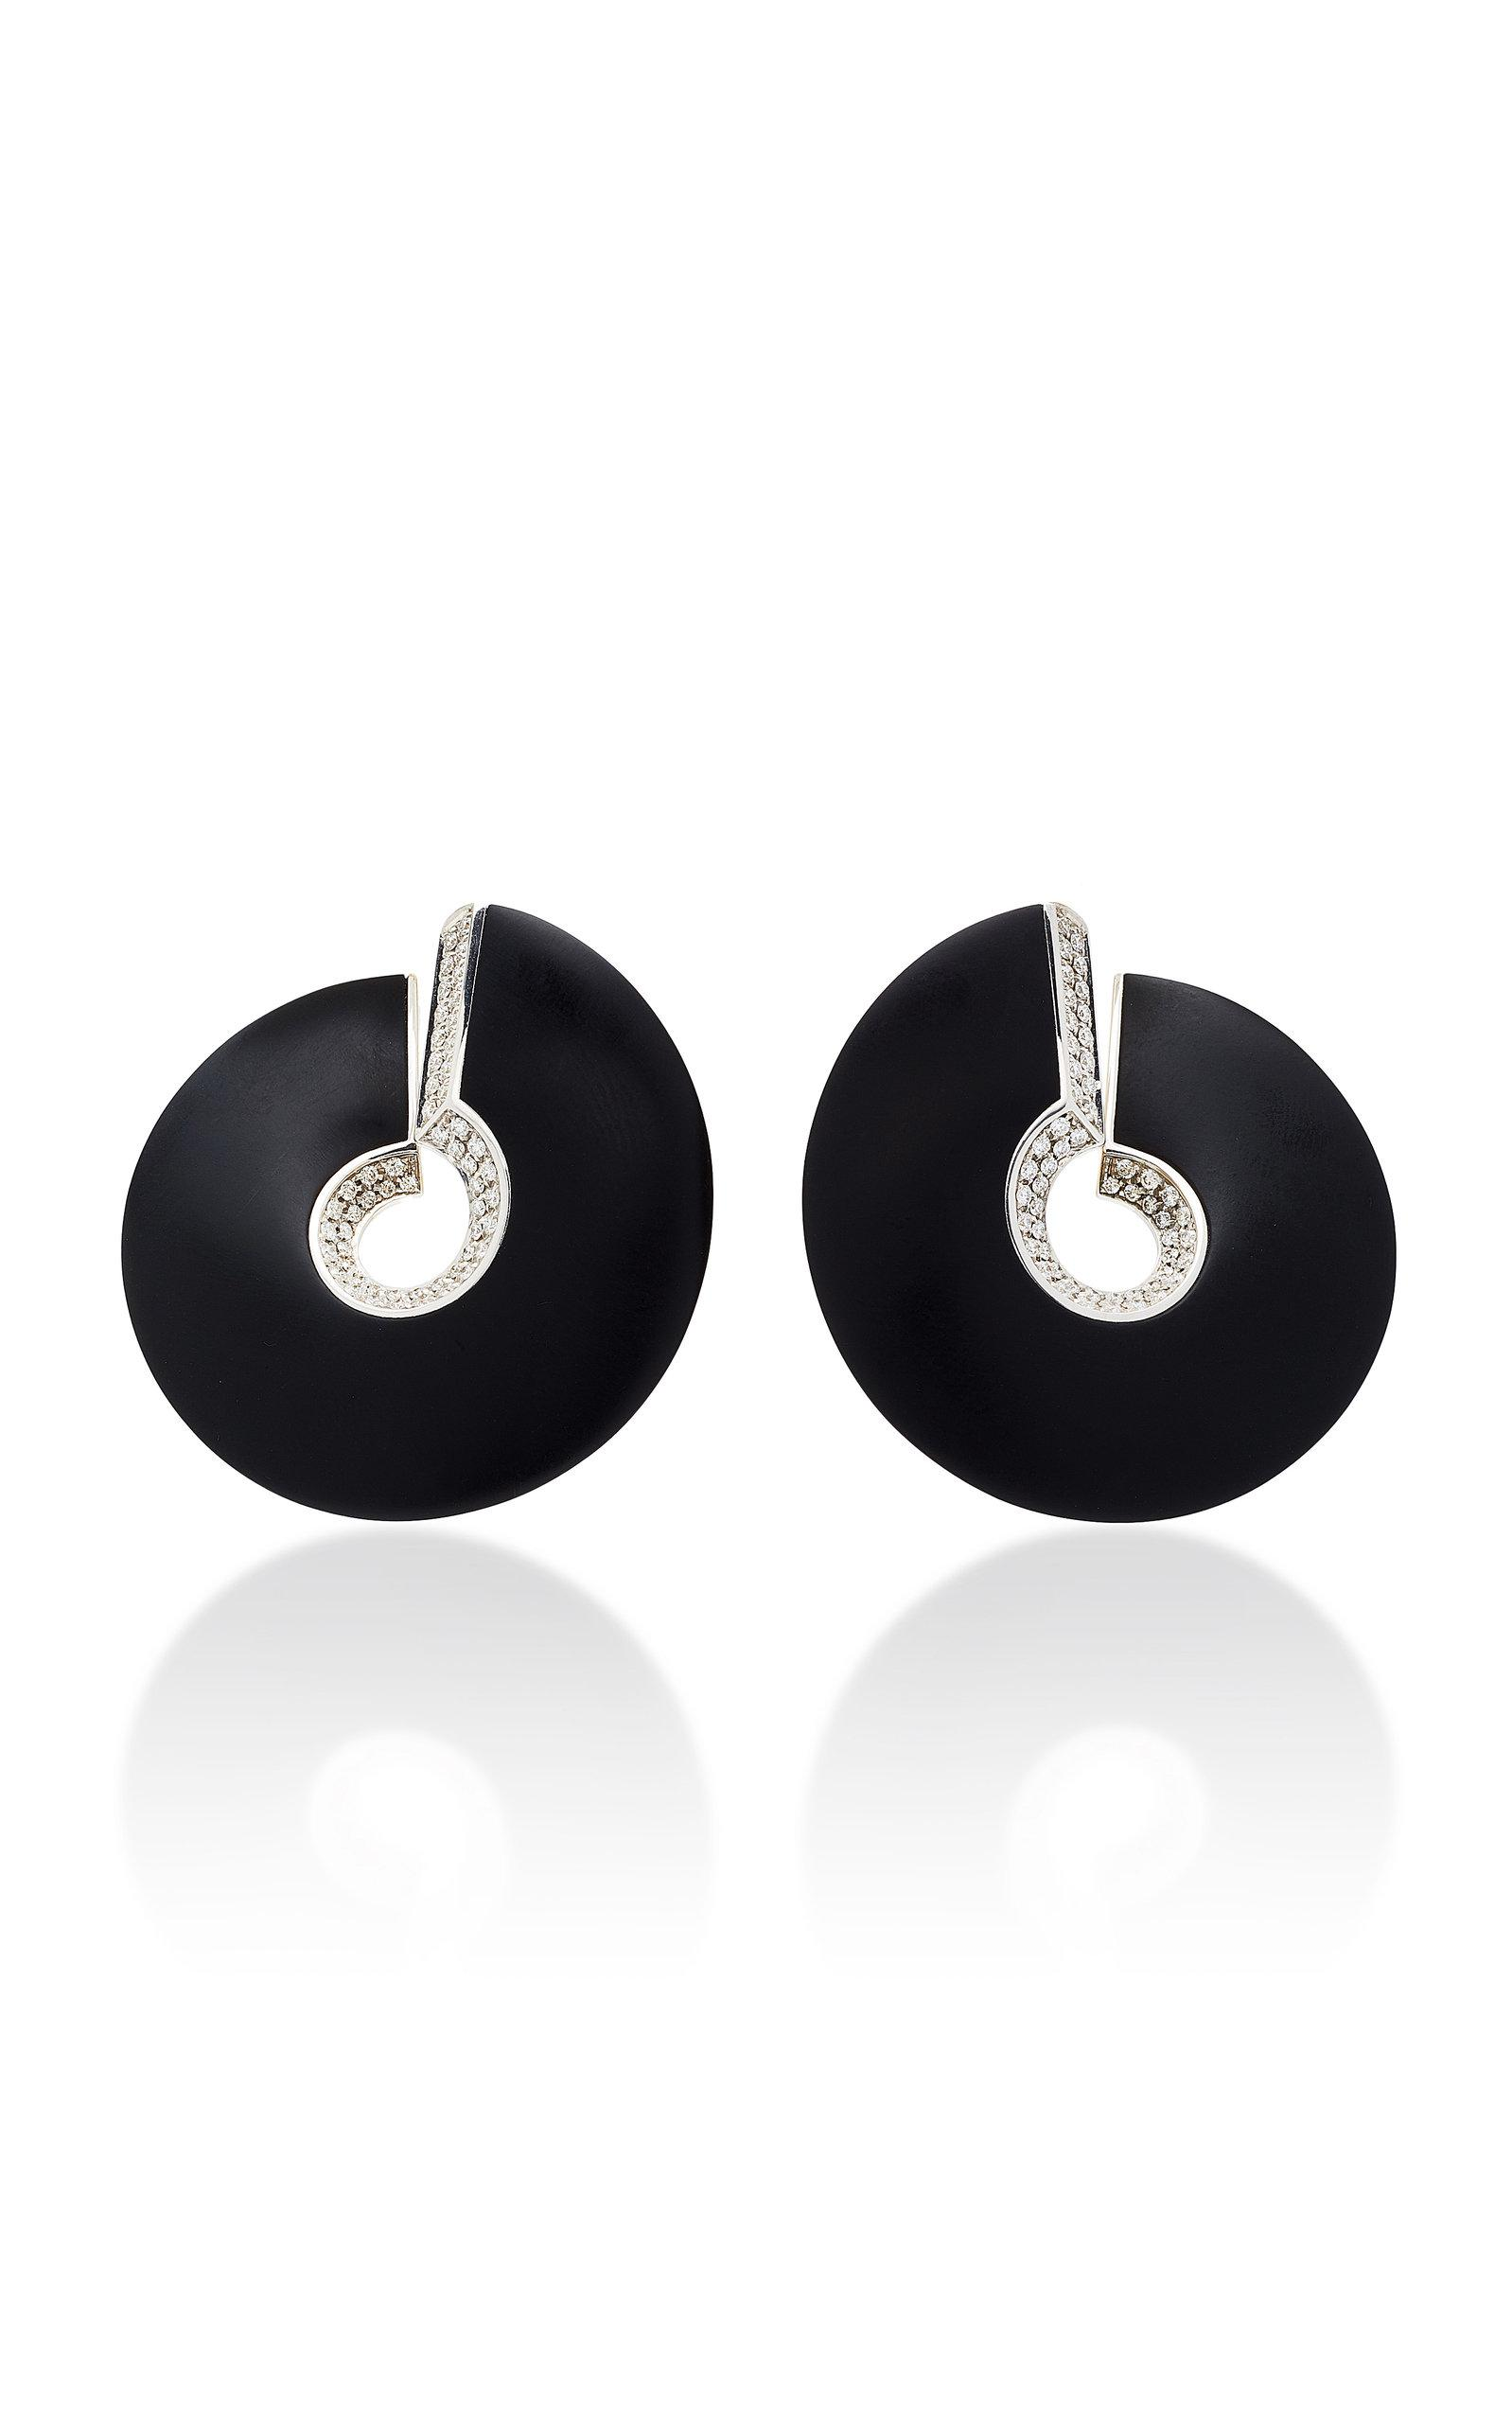 Vhernier Verso Grande Clip Earrings